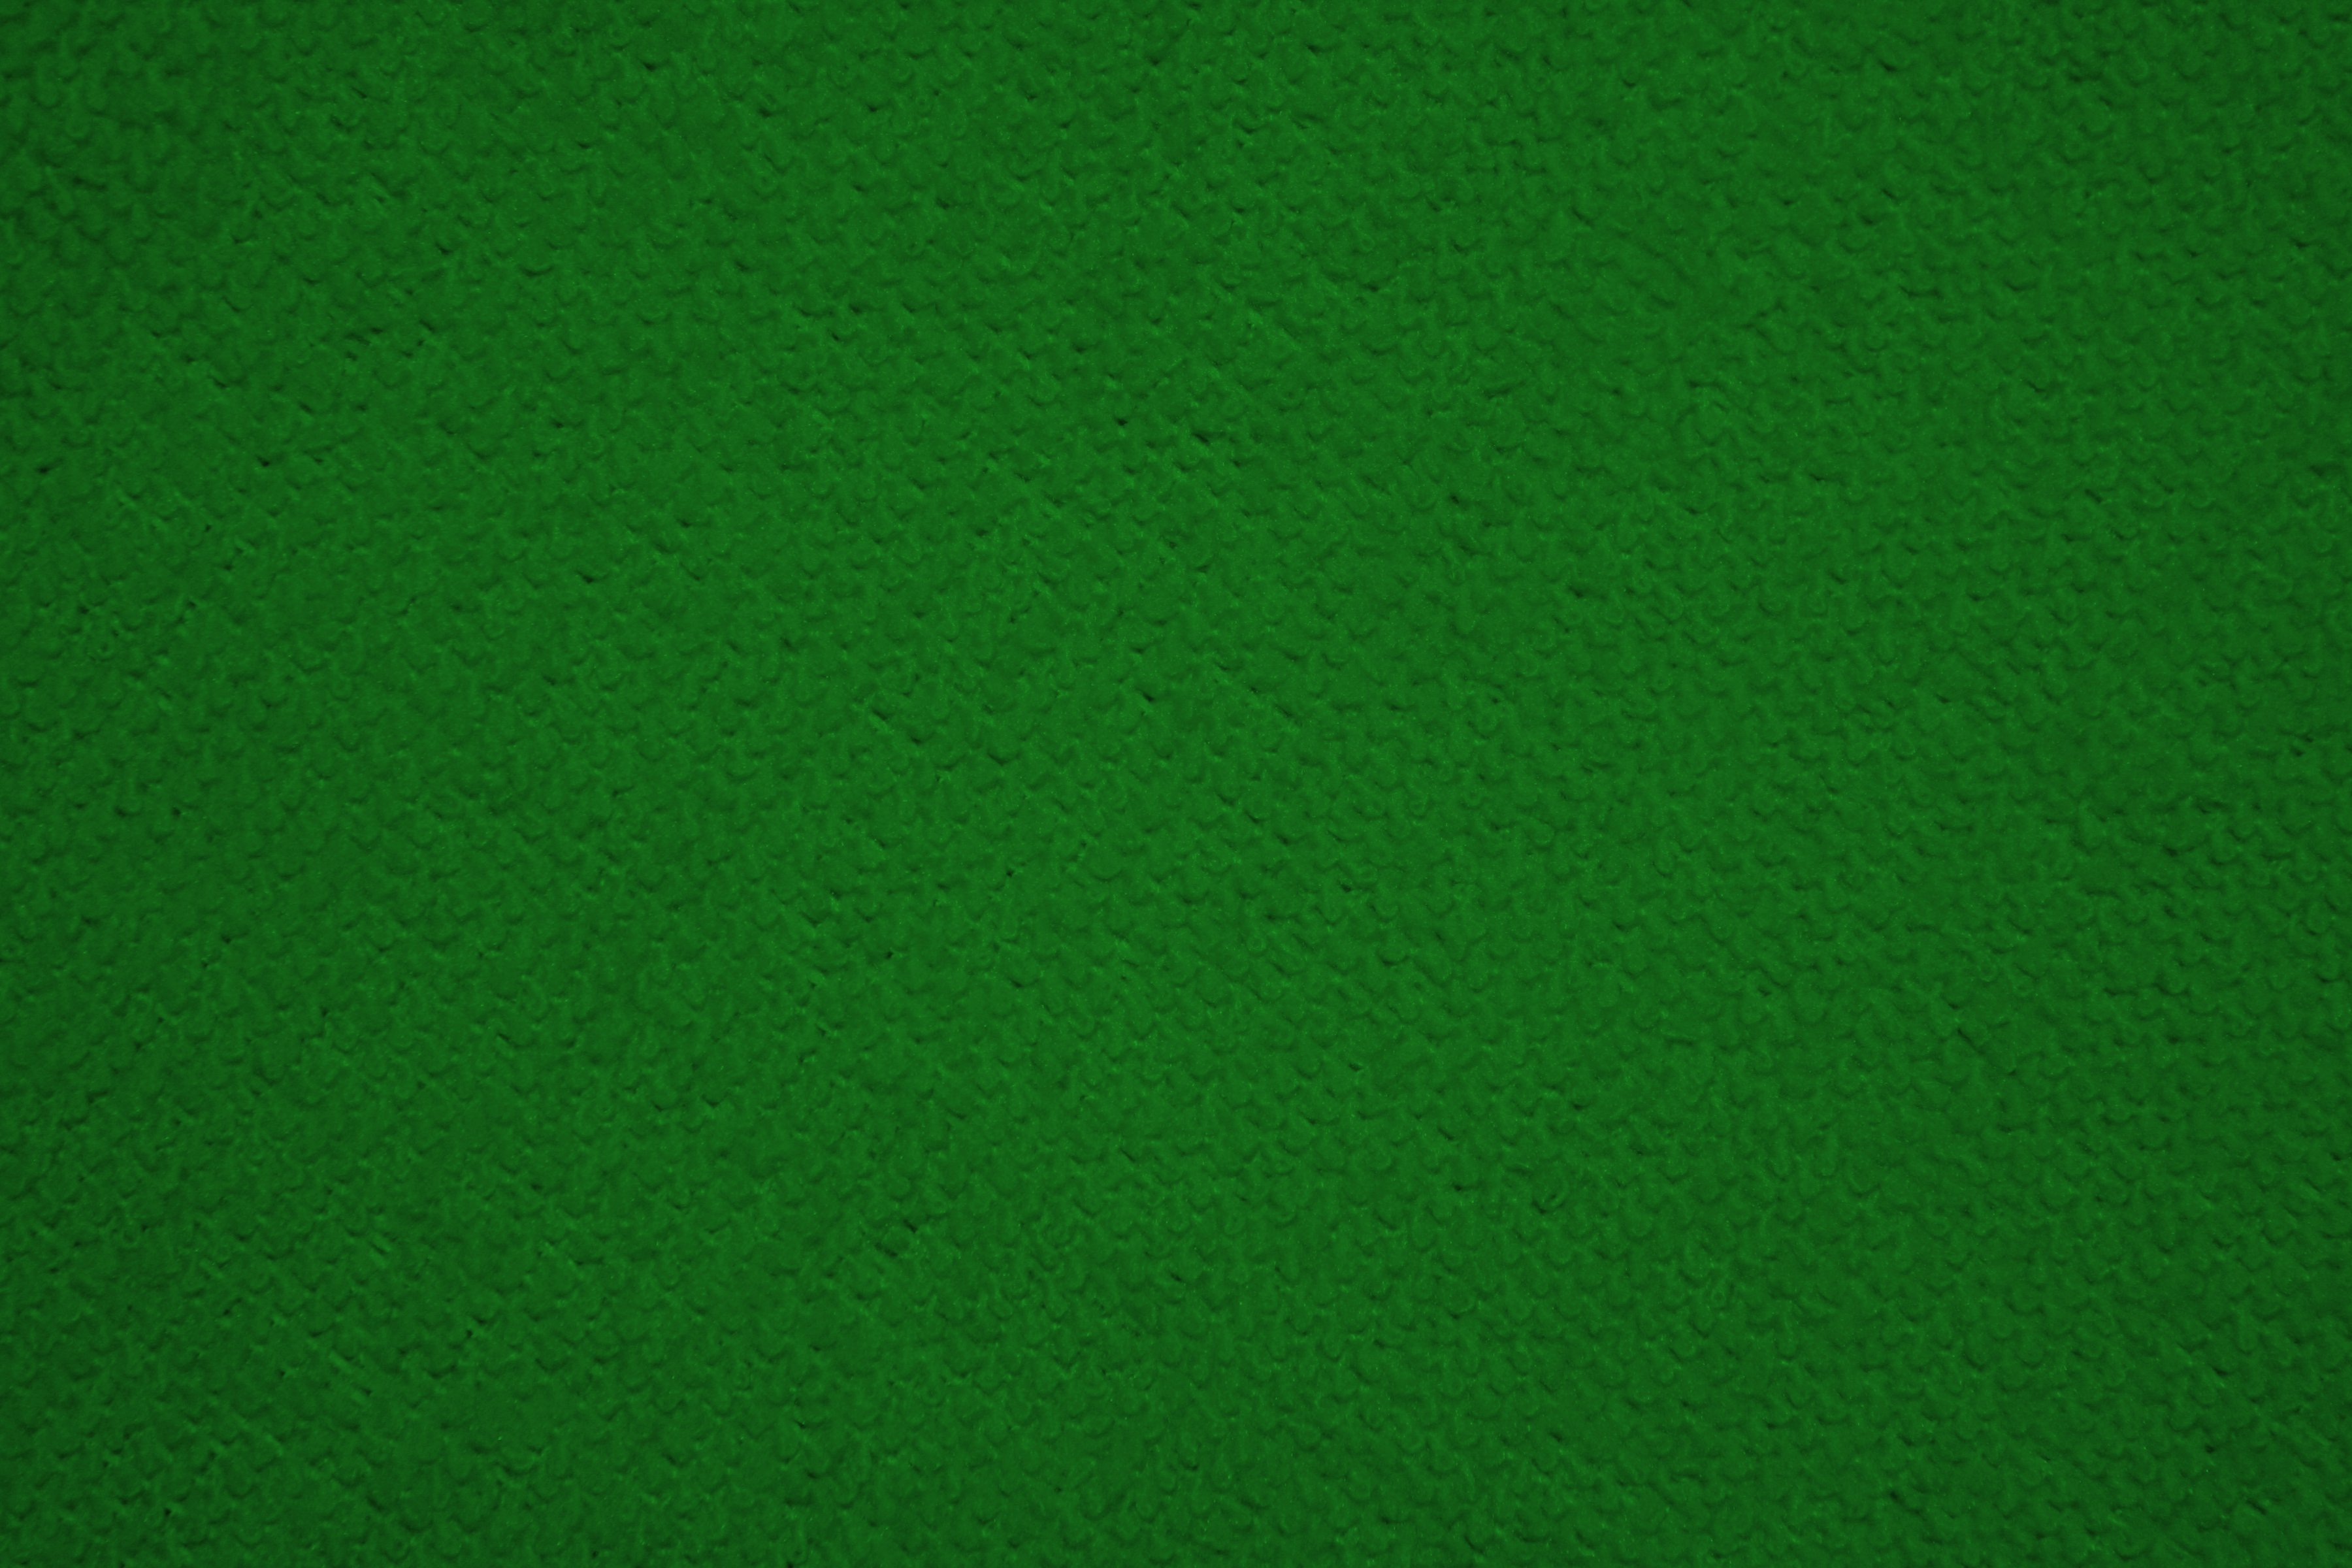 Kelly Green Microfiber Cloth Fabric Texture Picture Free